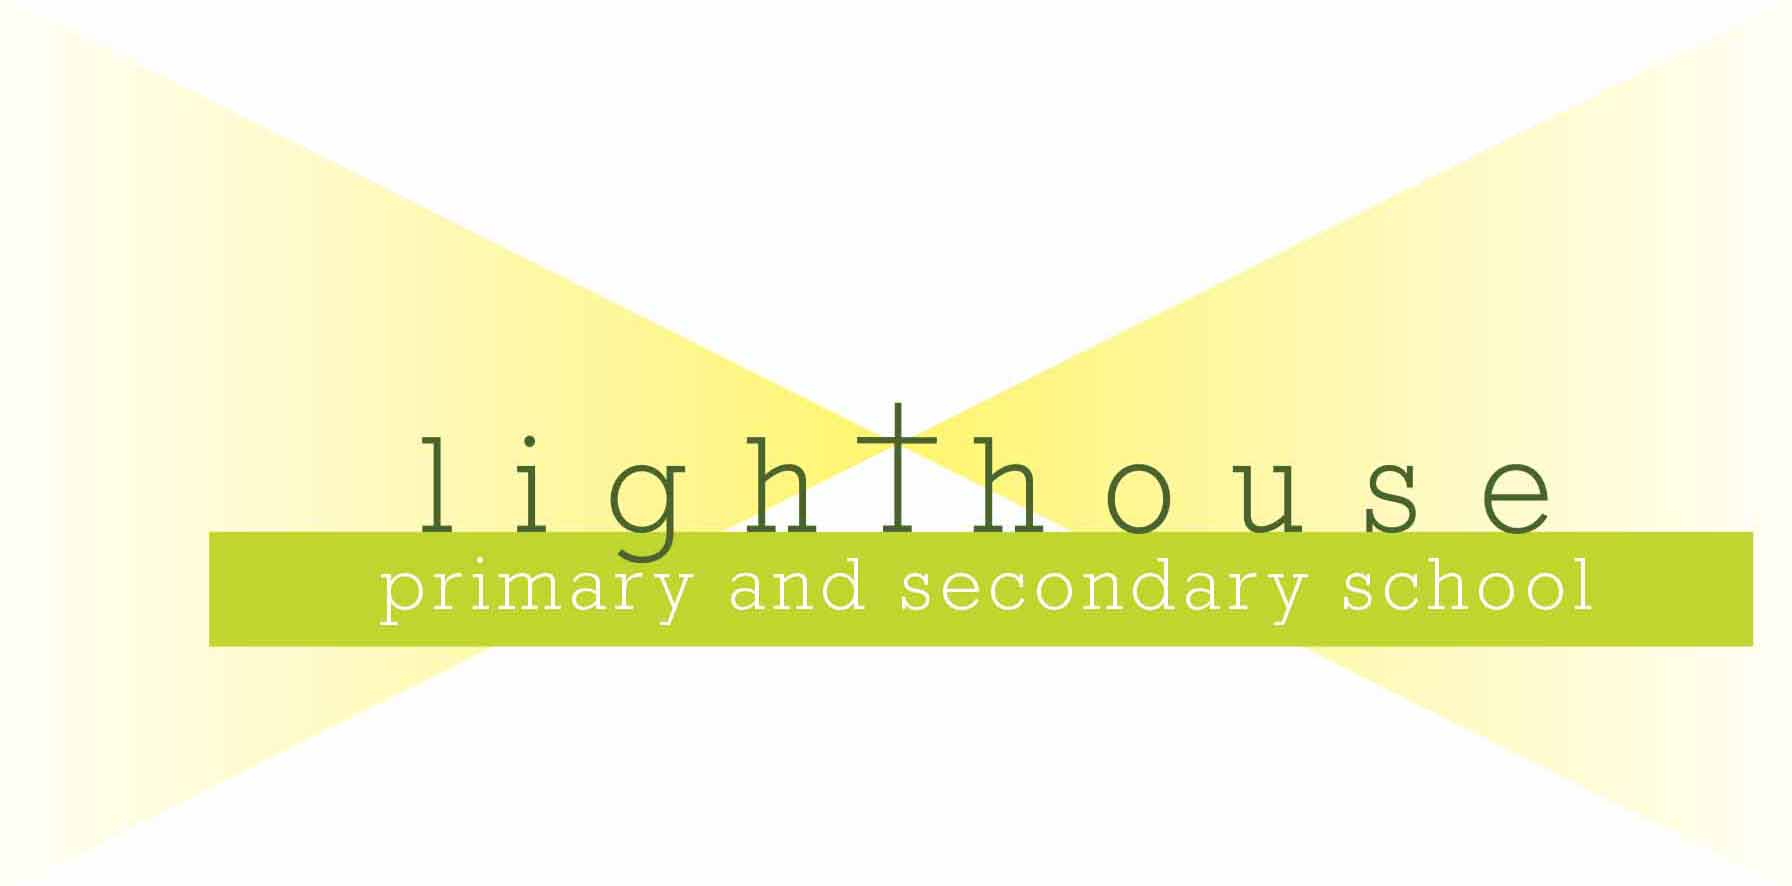 https://teachbeyond.org/site-content/uploads/sites/12/2018/07/lighthouseprimarysecondaryschoollogo.jpg